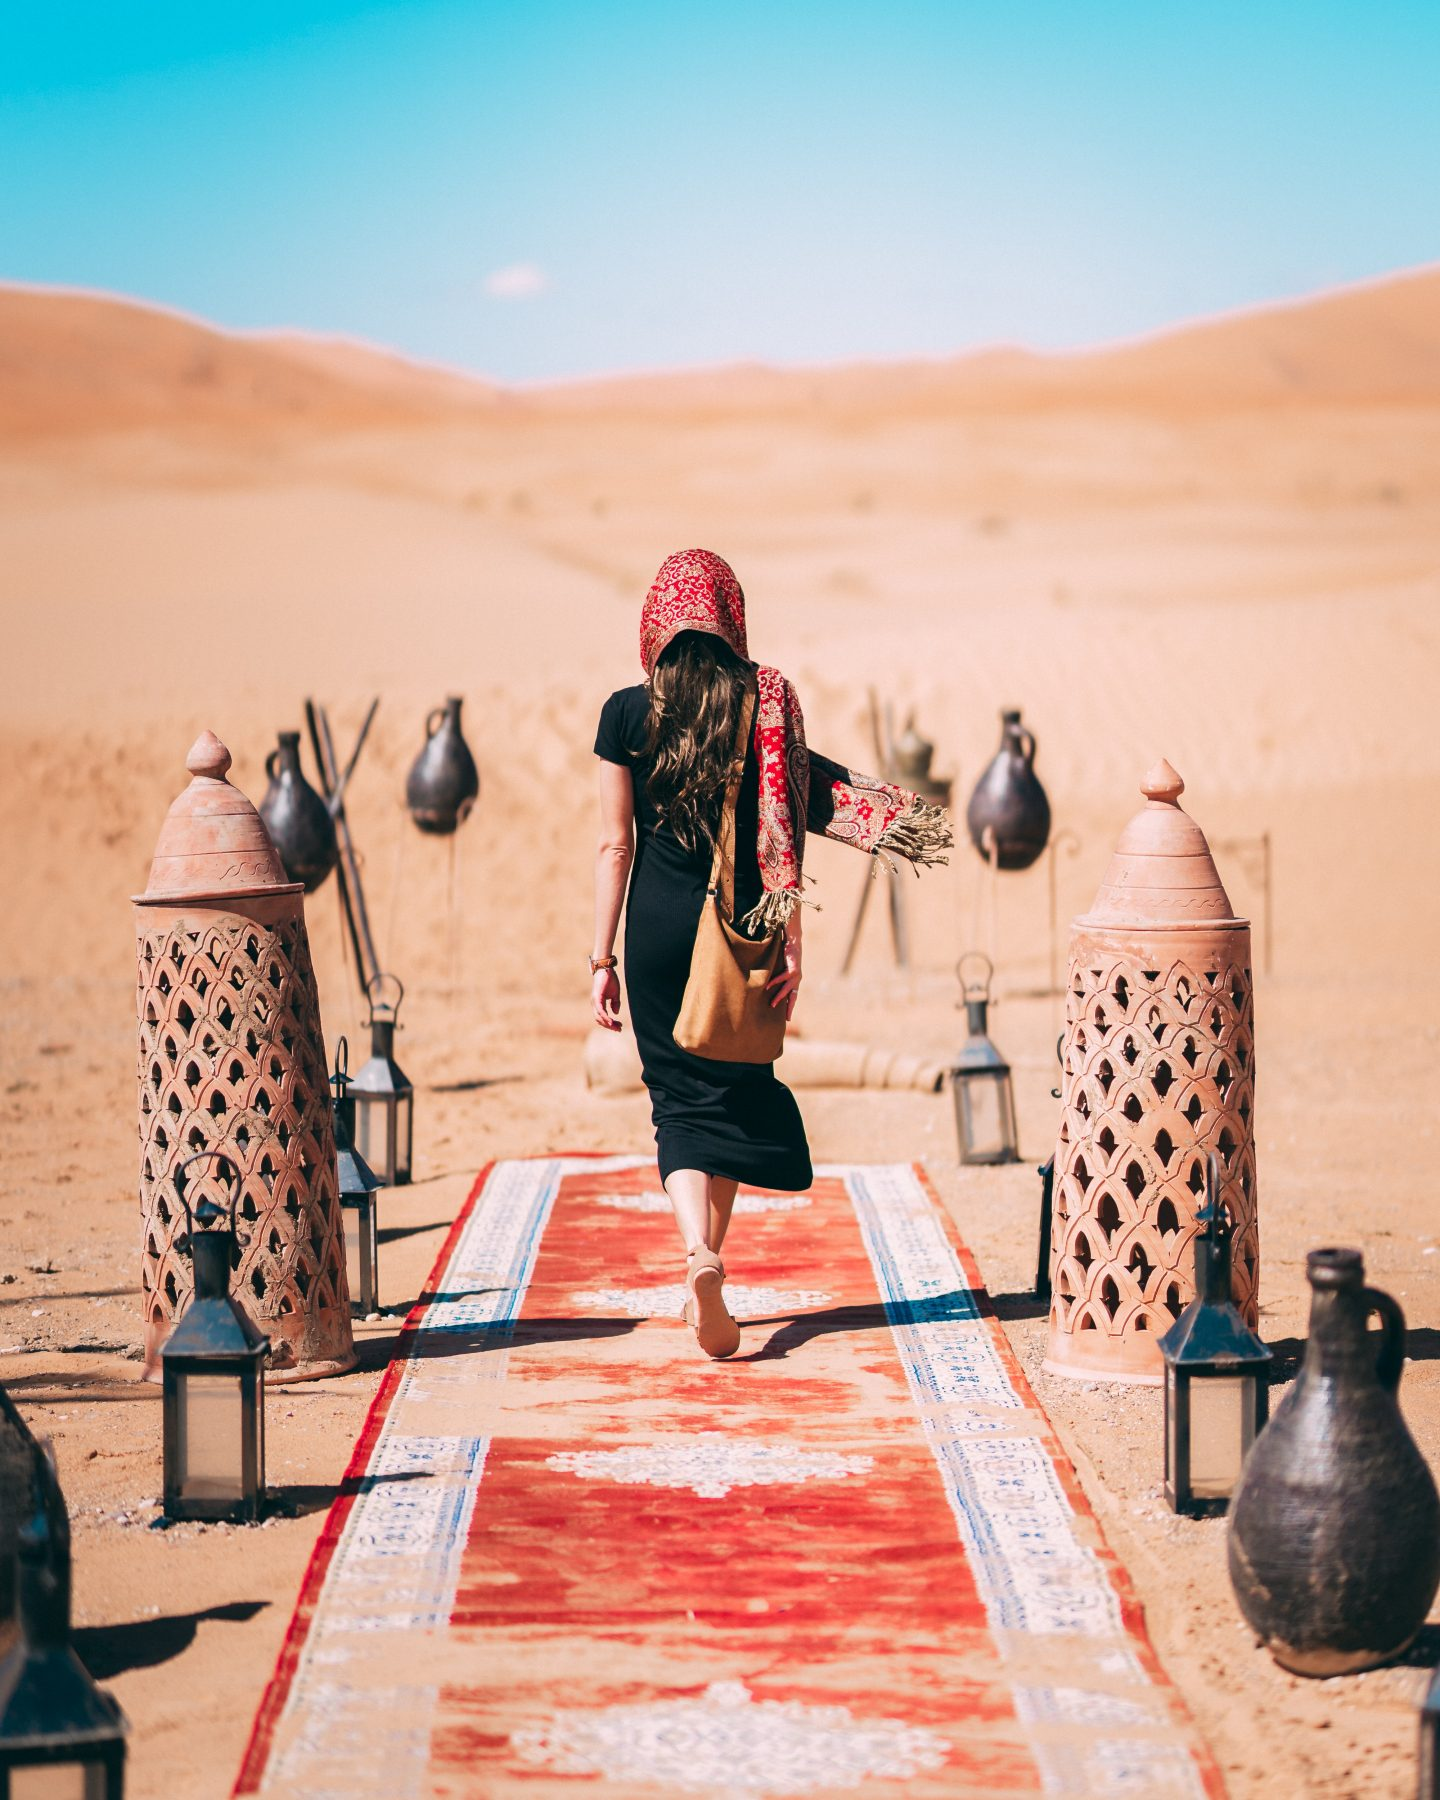 A tourist touring the desert wearing  essential egypt packing list items